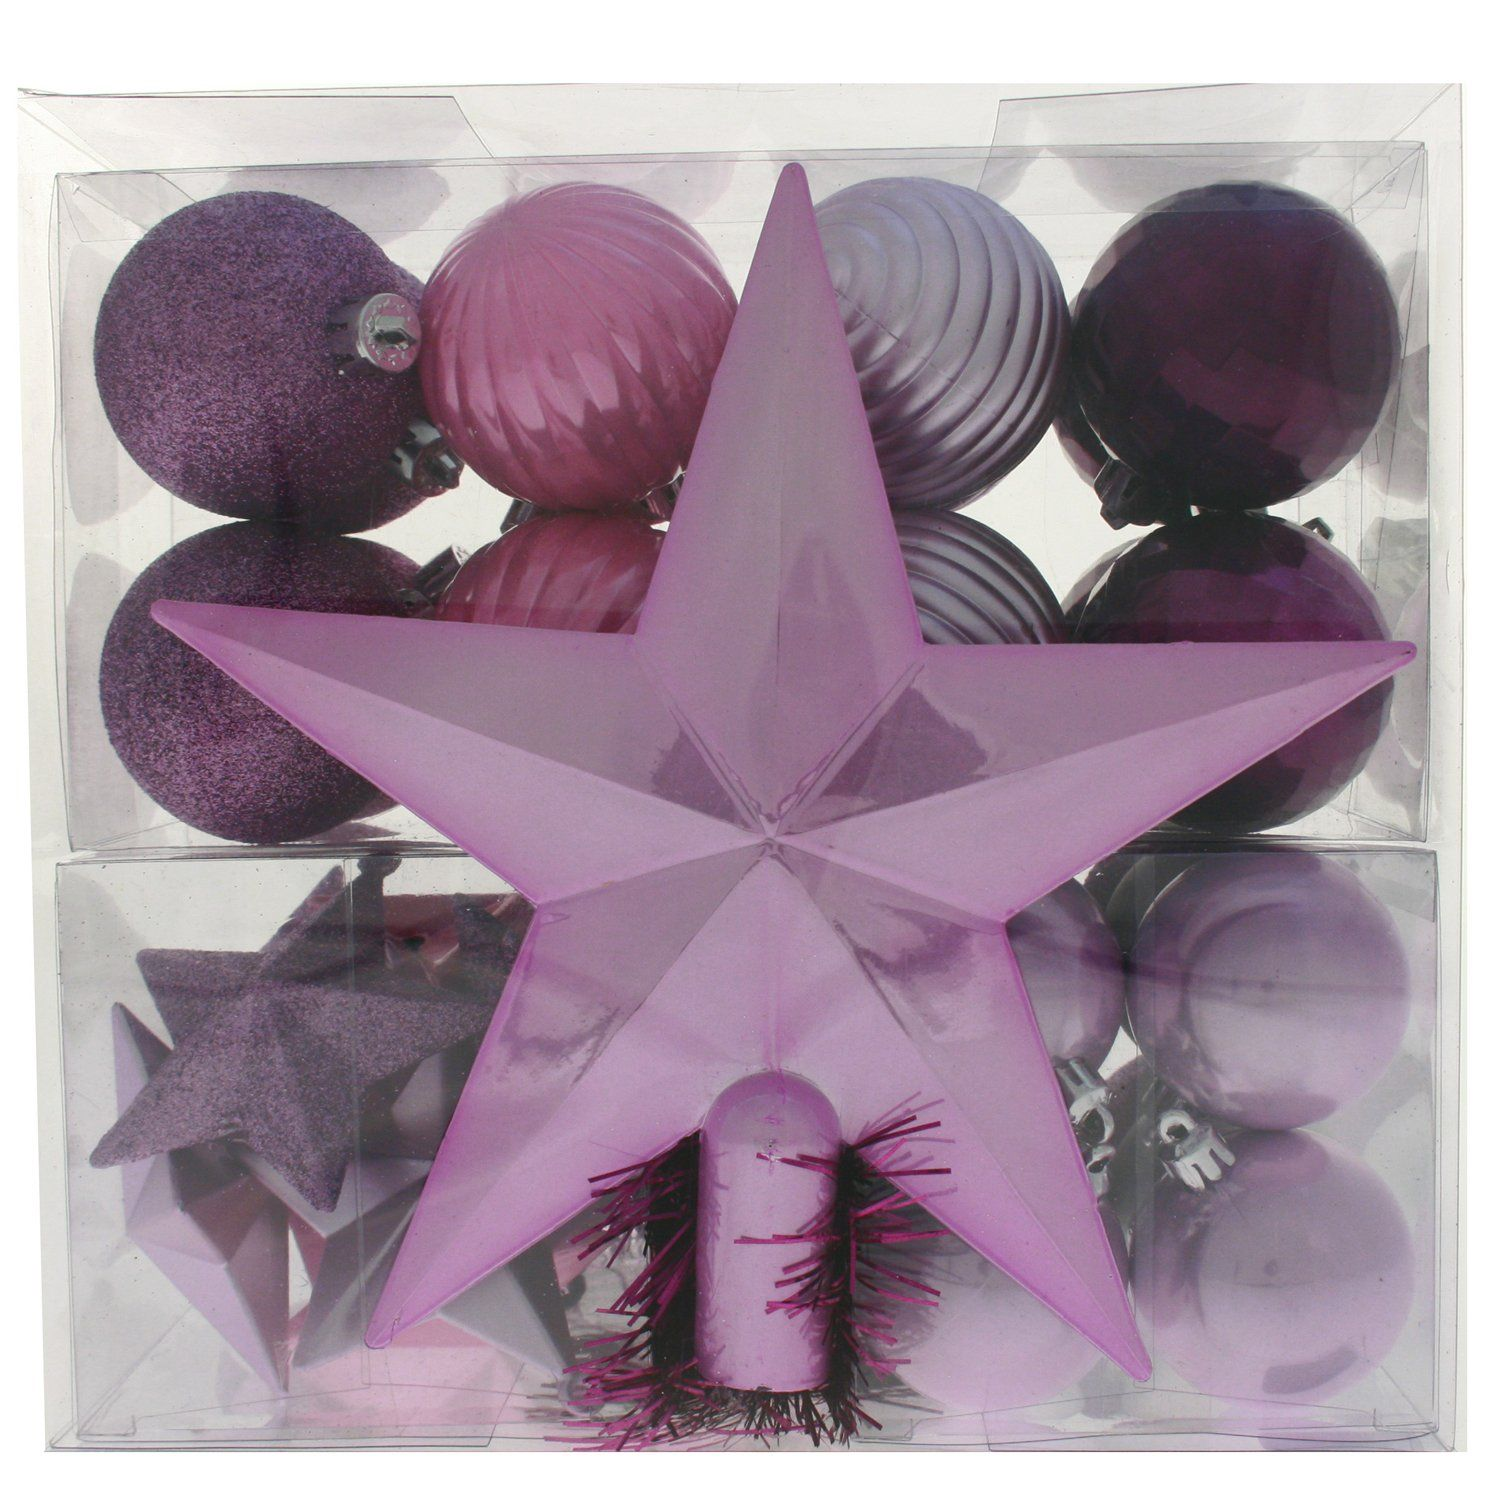 WeRChristmas 42 Piece Shatterproof Plastic Baubles Decoration Pack With Tree  Topper And Garland, Purple